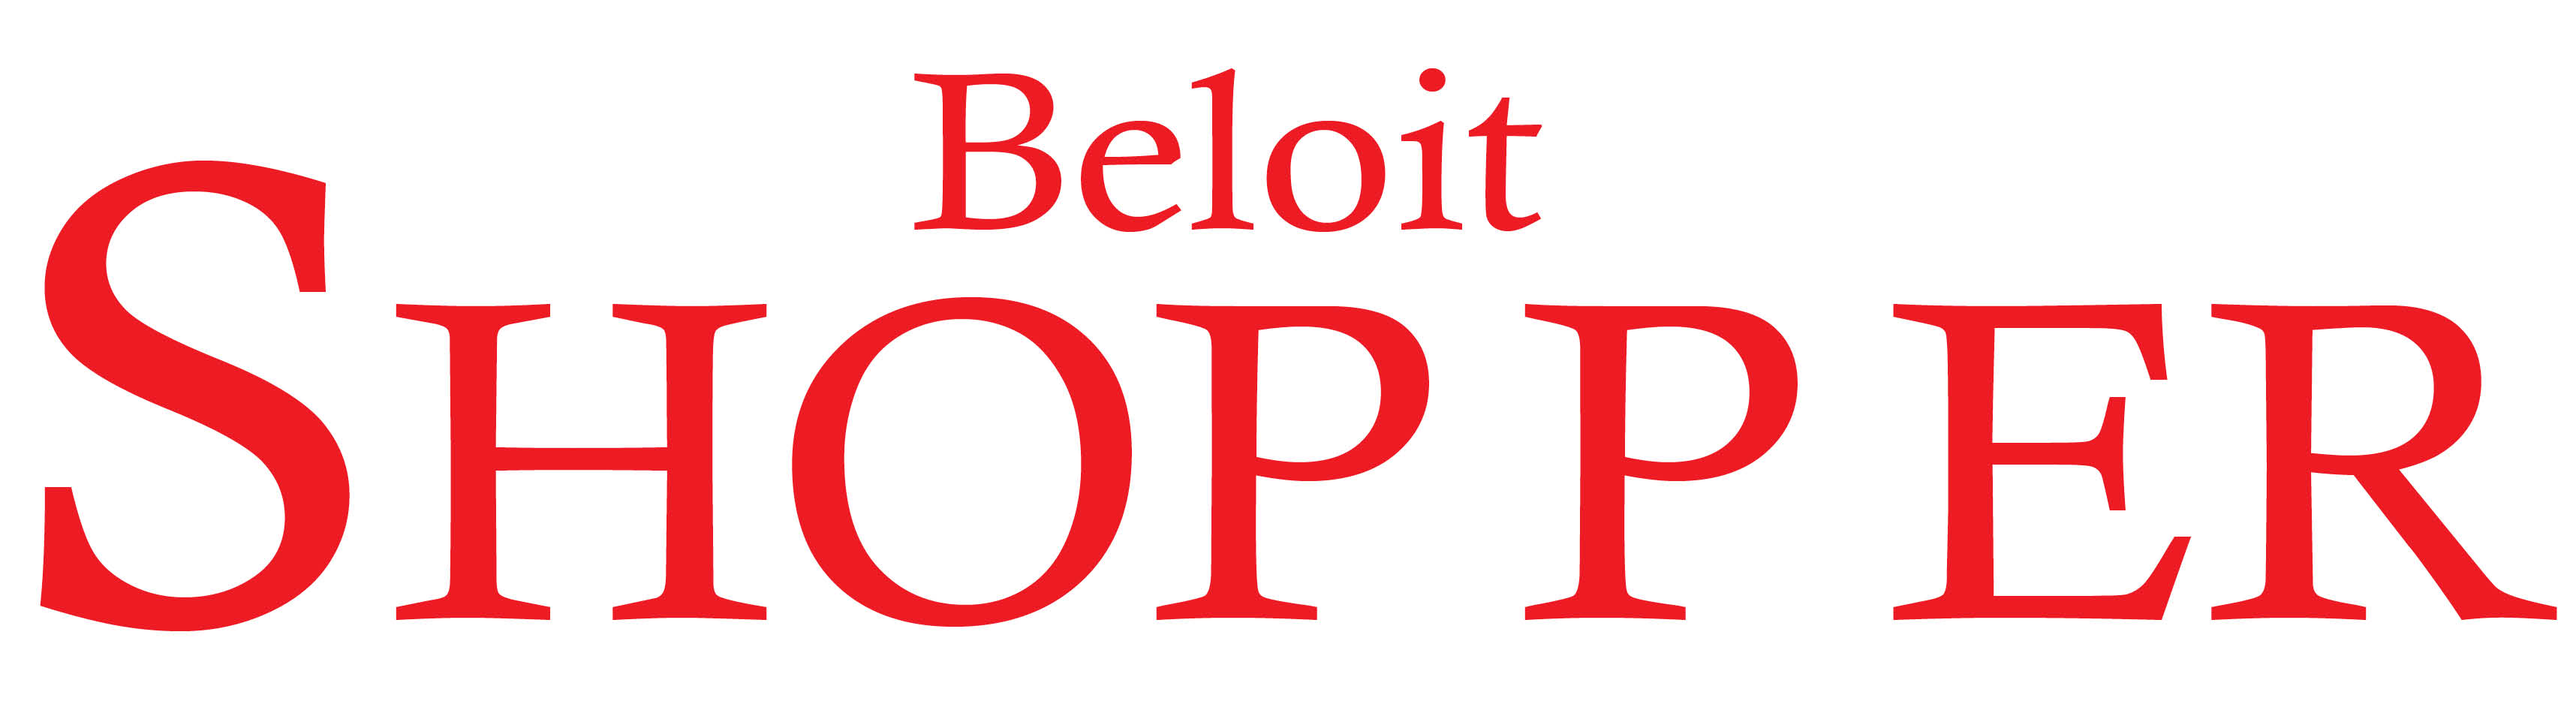 8/10/17 Beloit Shopper